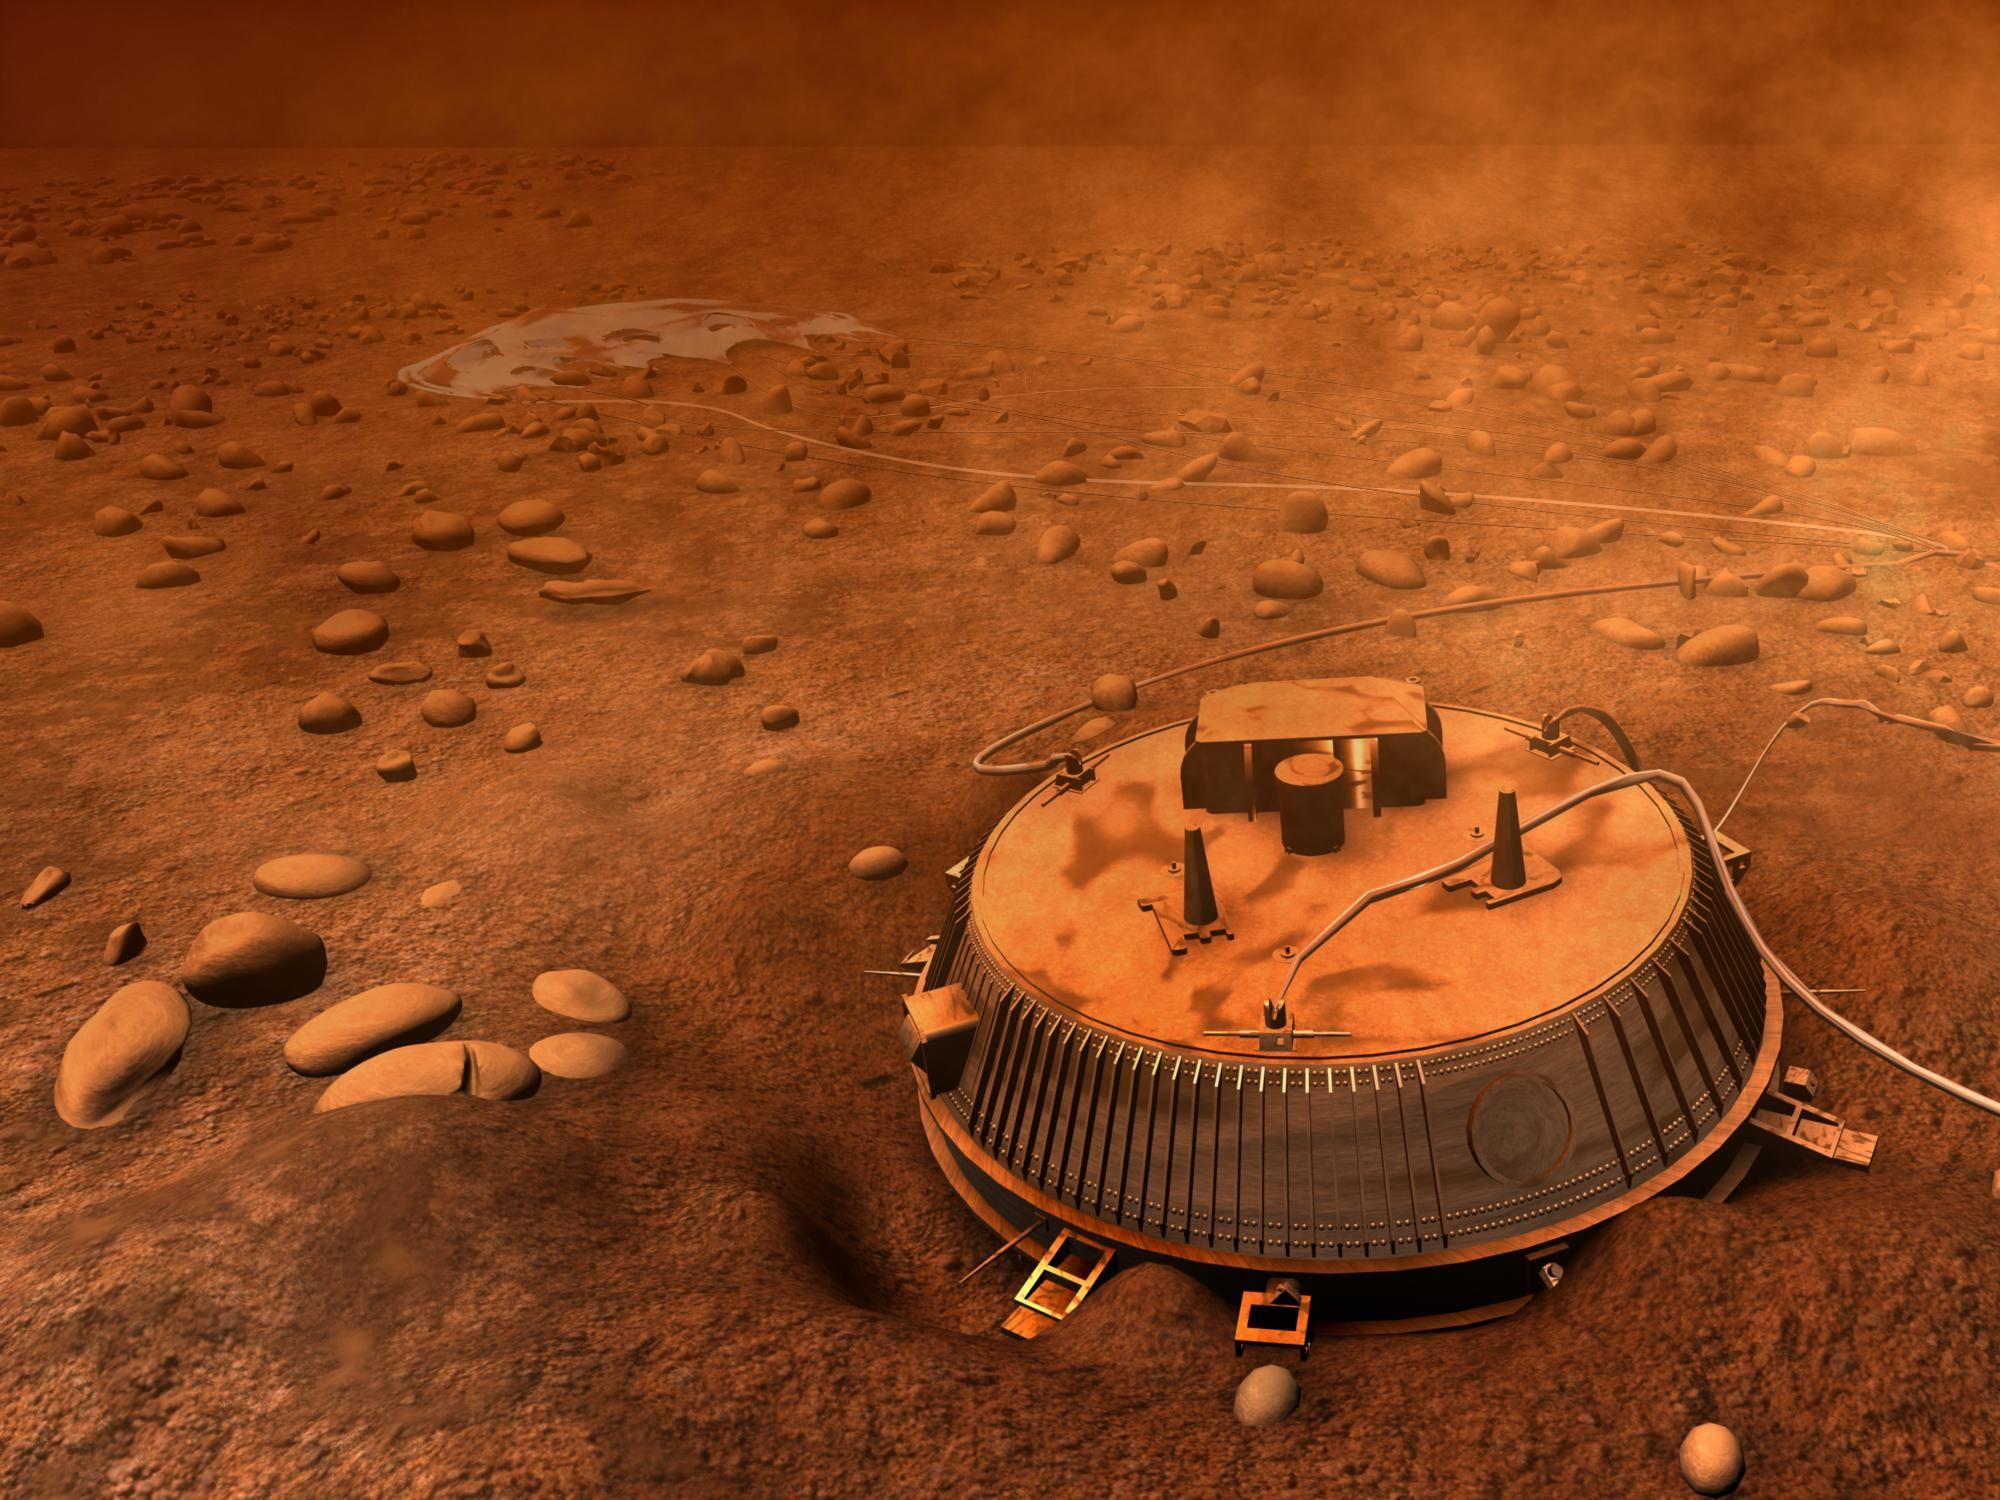 Artist's concept of Huygens on the surface of Titan